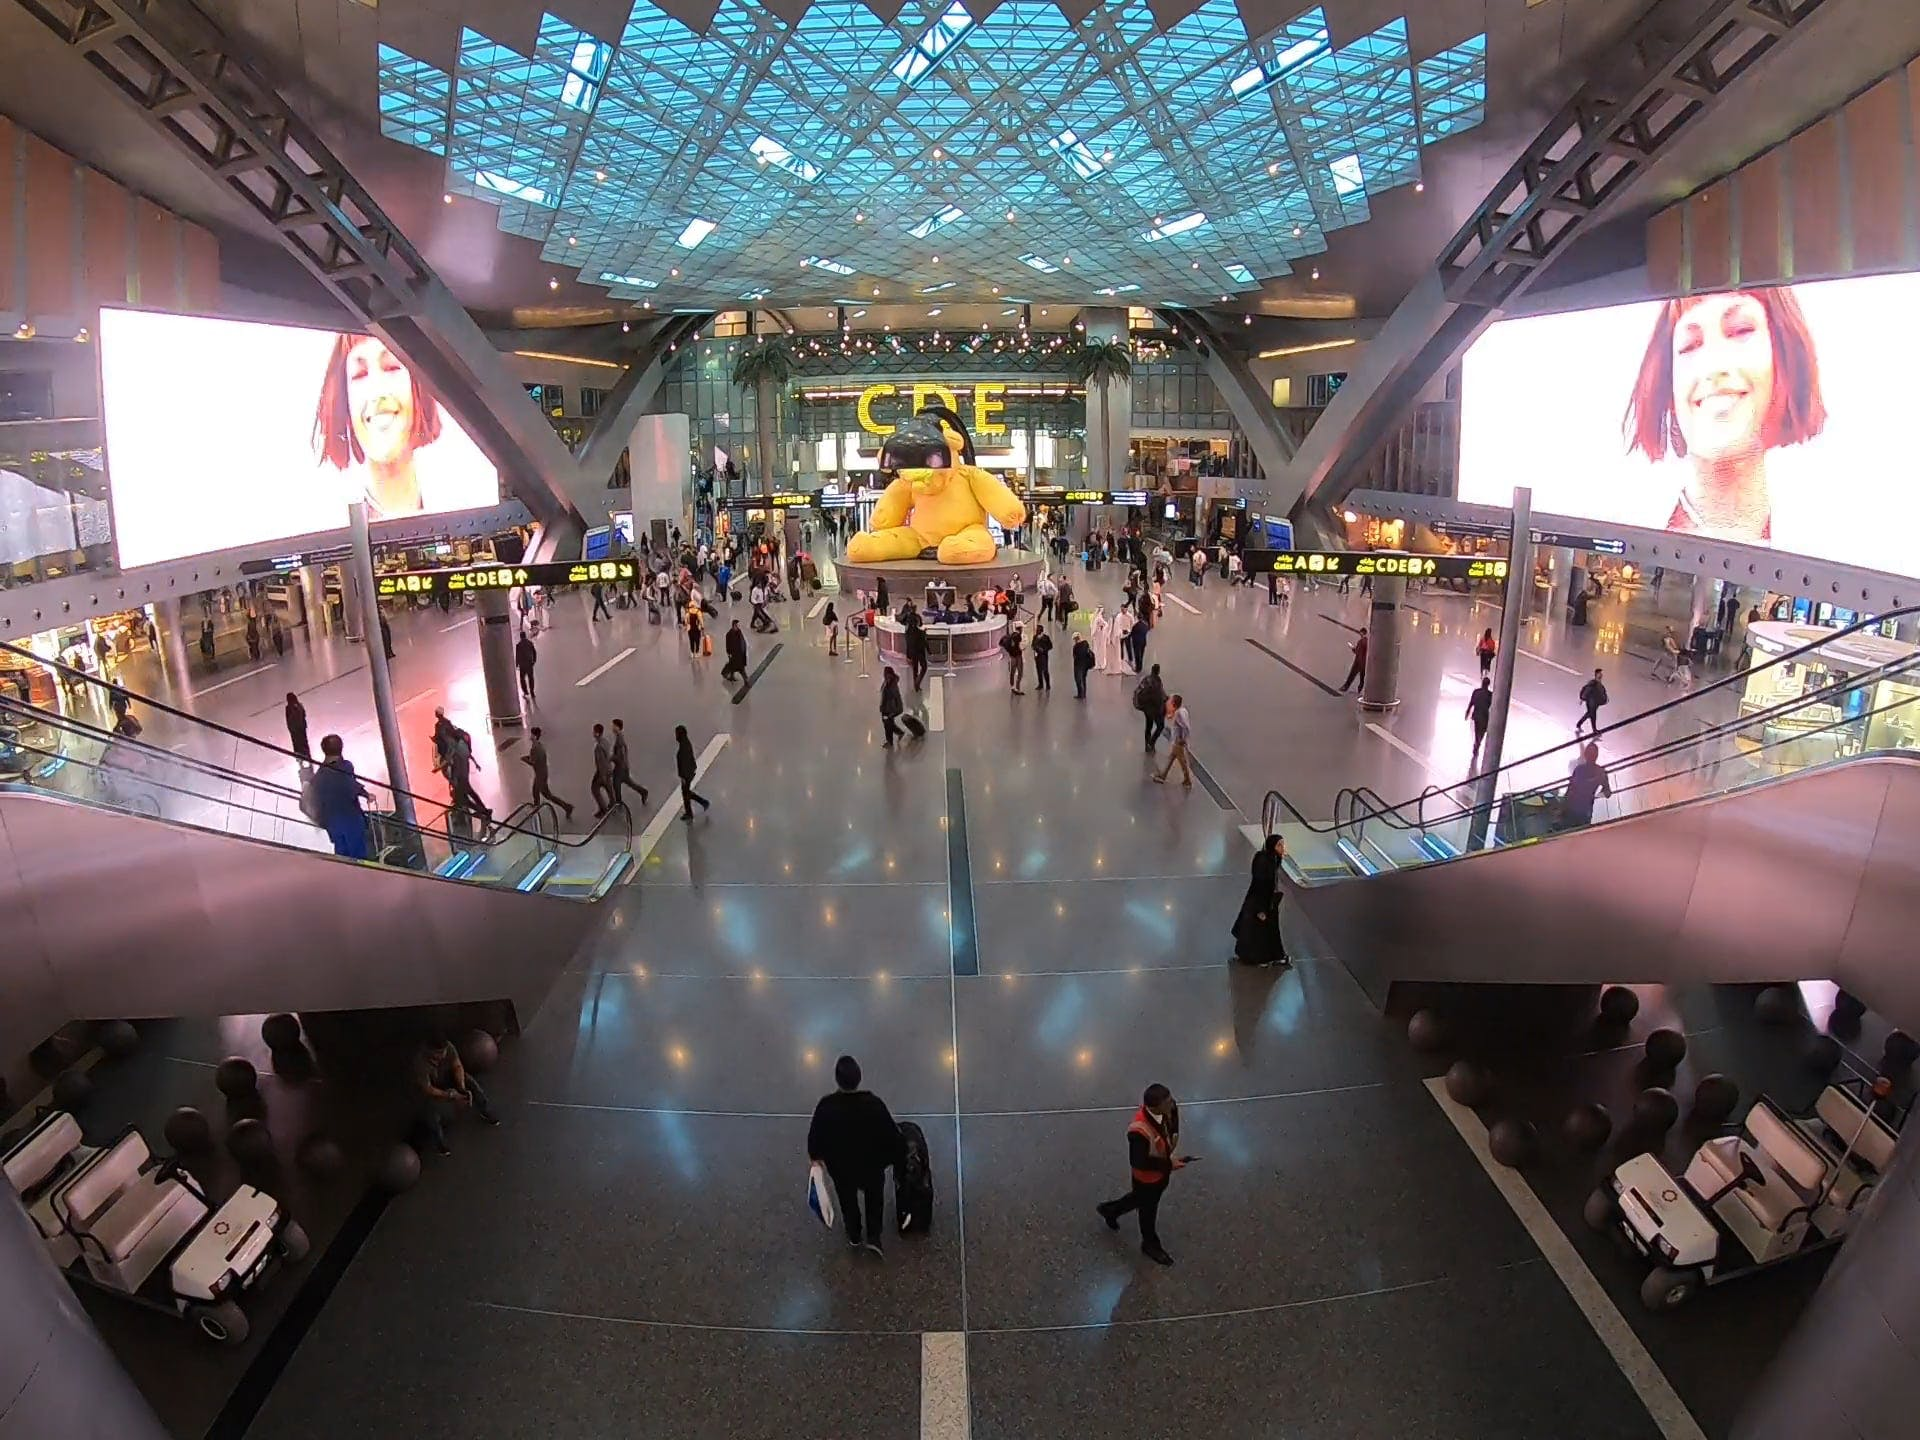 Passengers In An Airport In Timelapse Mode